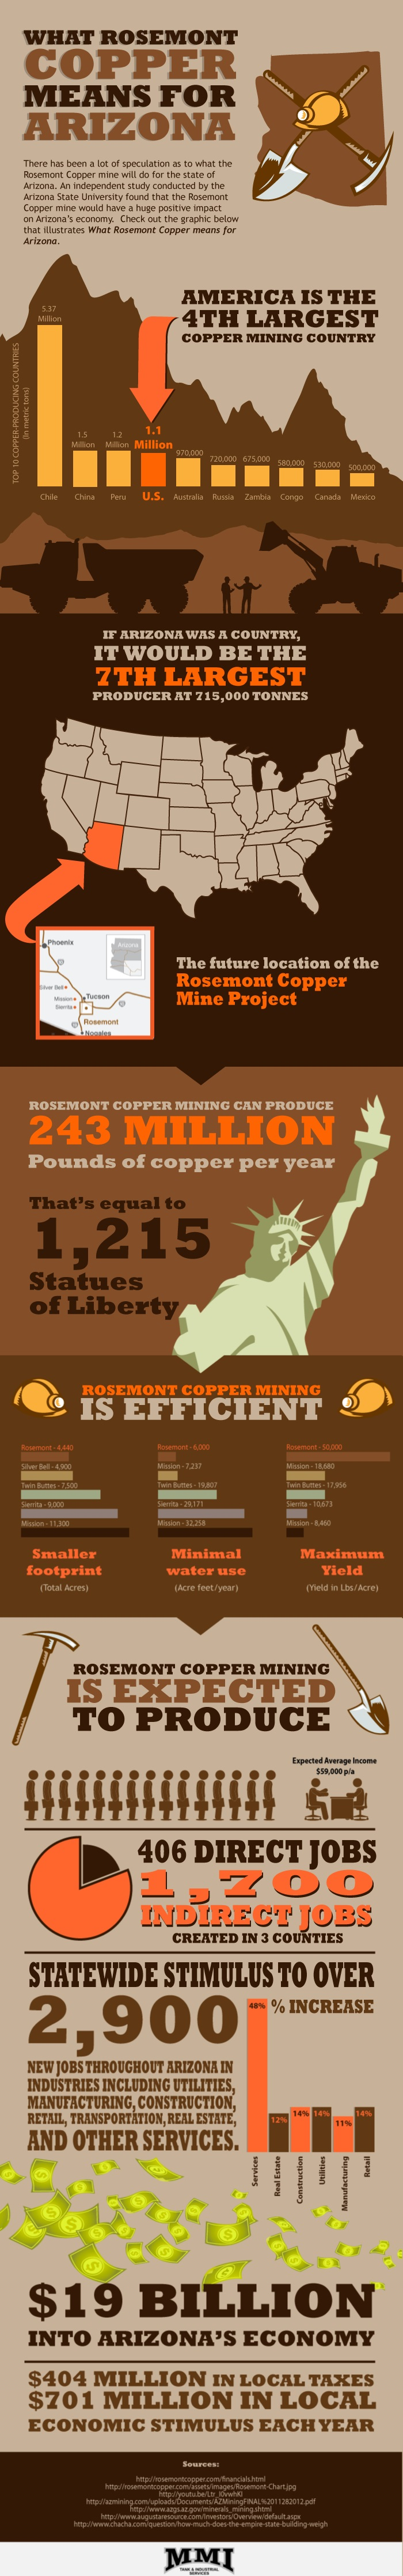 Rosemont-Copper-Mine-infographic